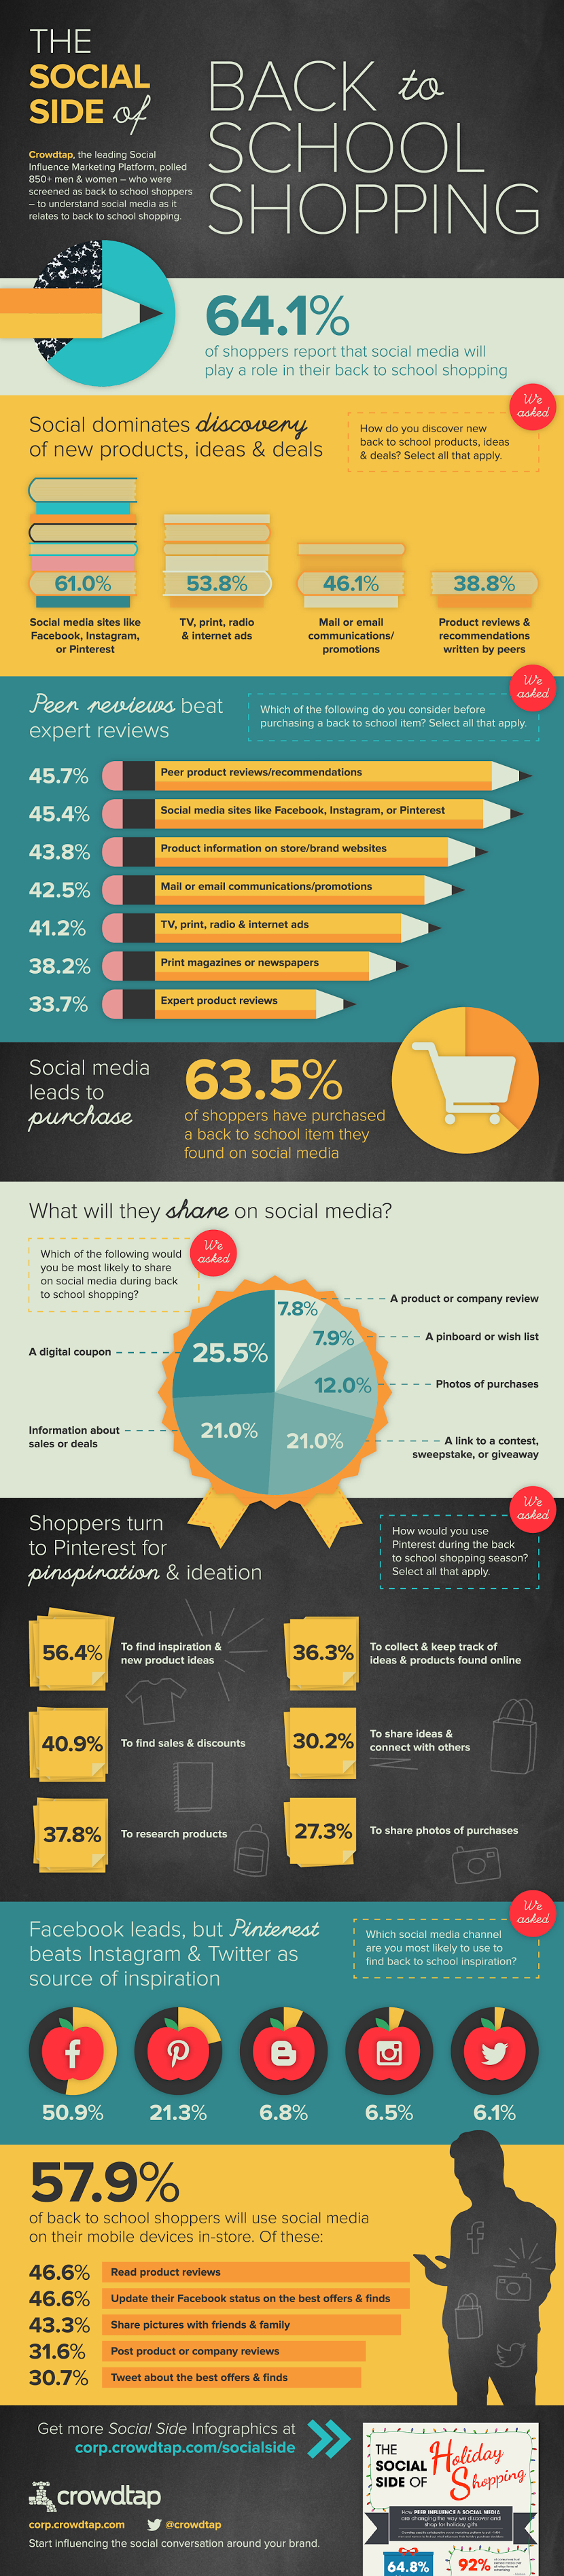 Social discovery prompts back to school product sales - #infographic